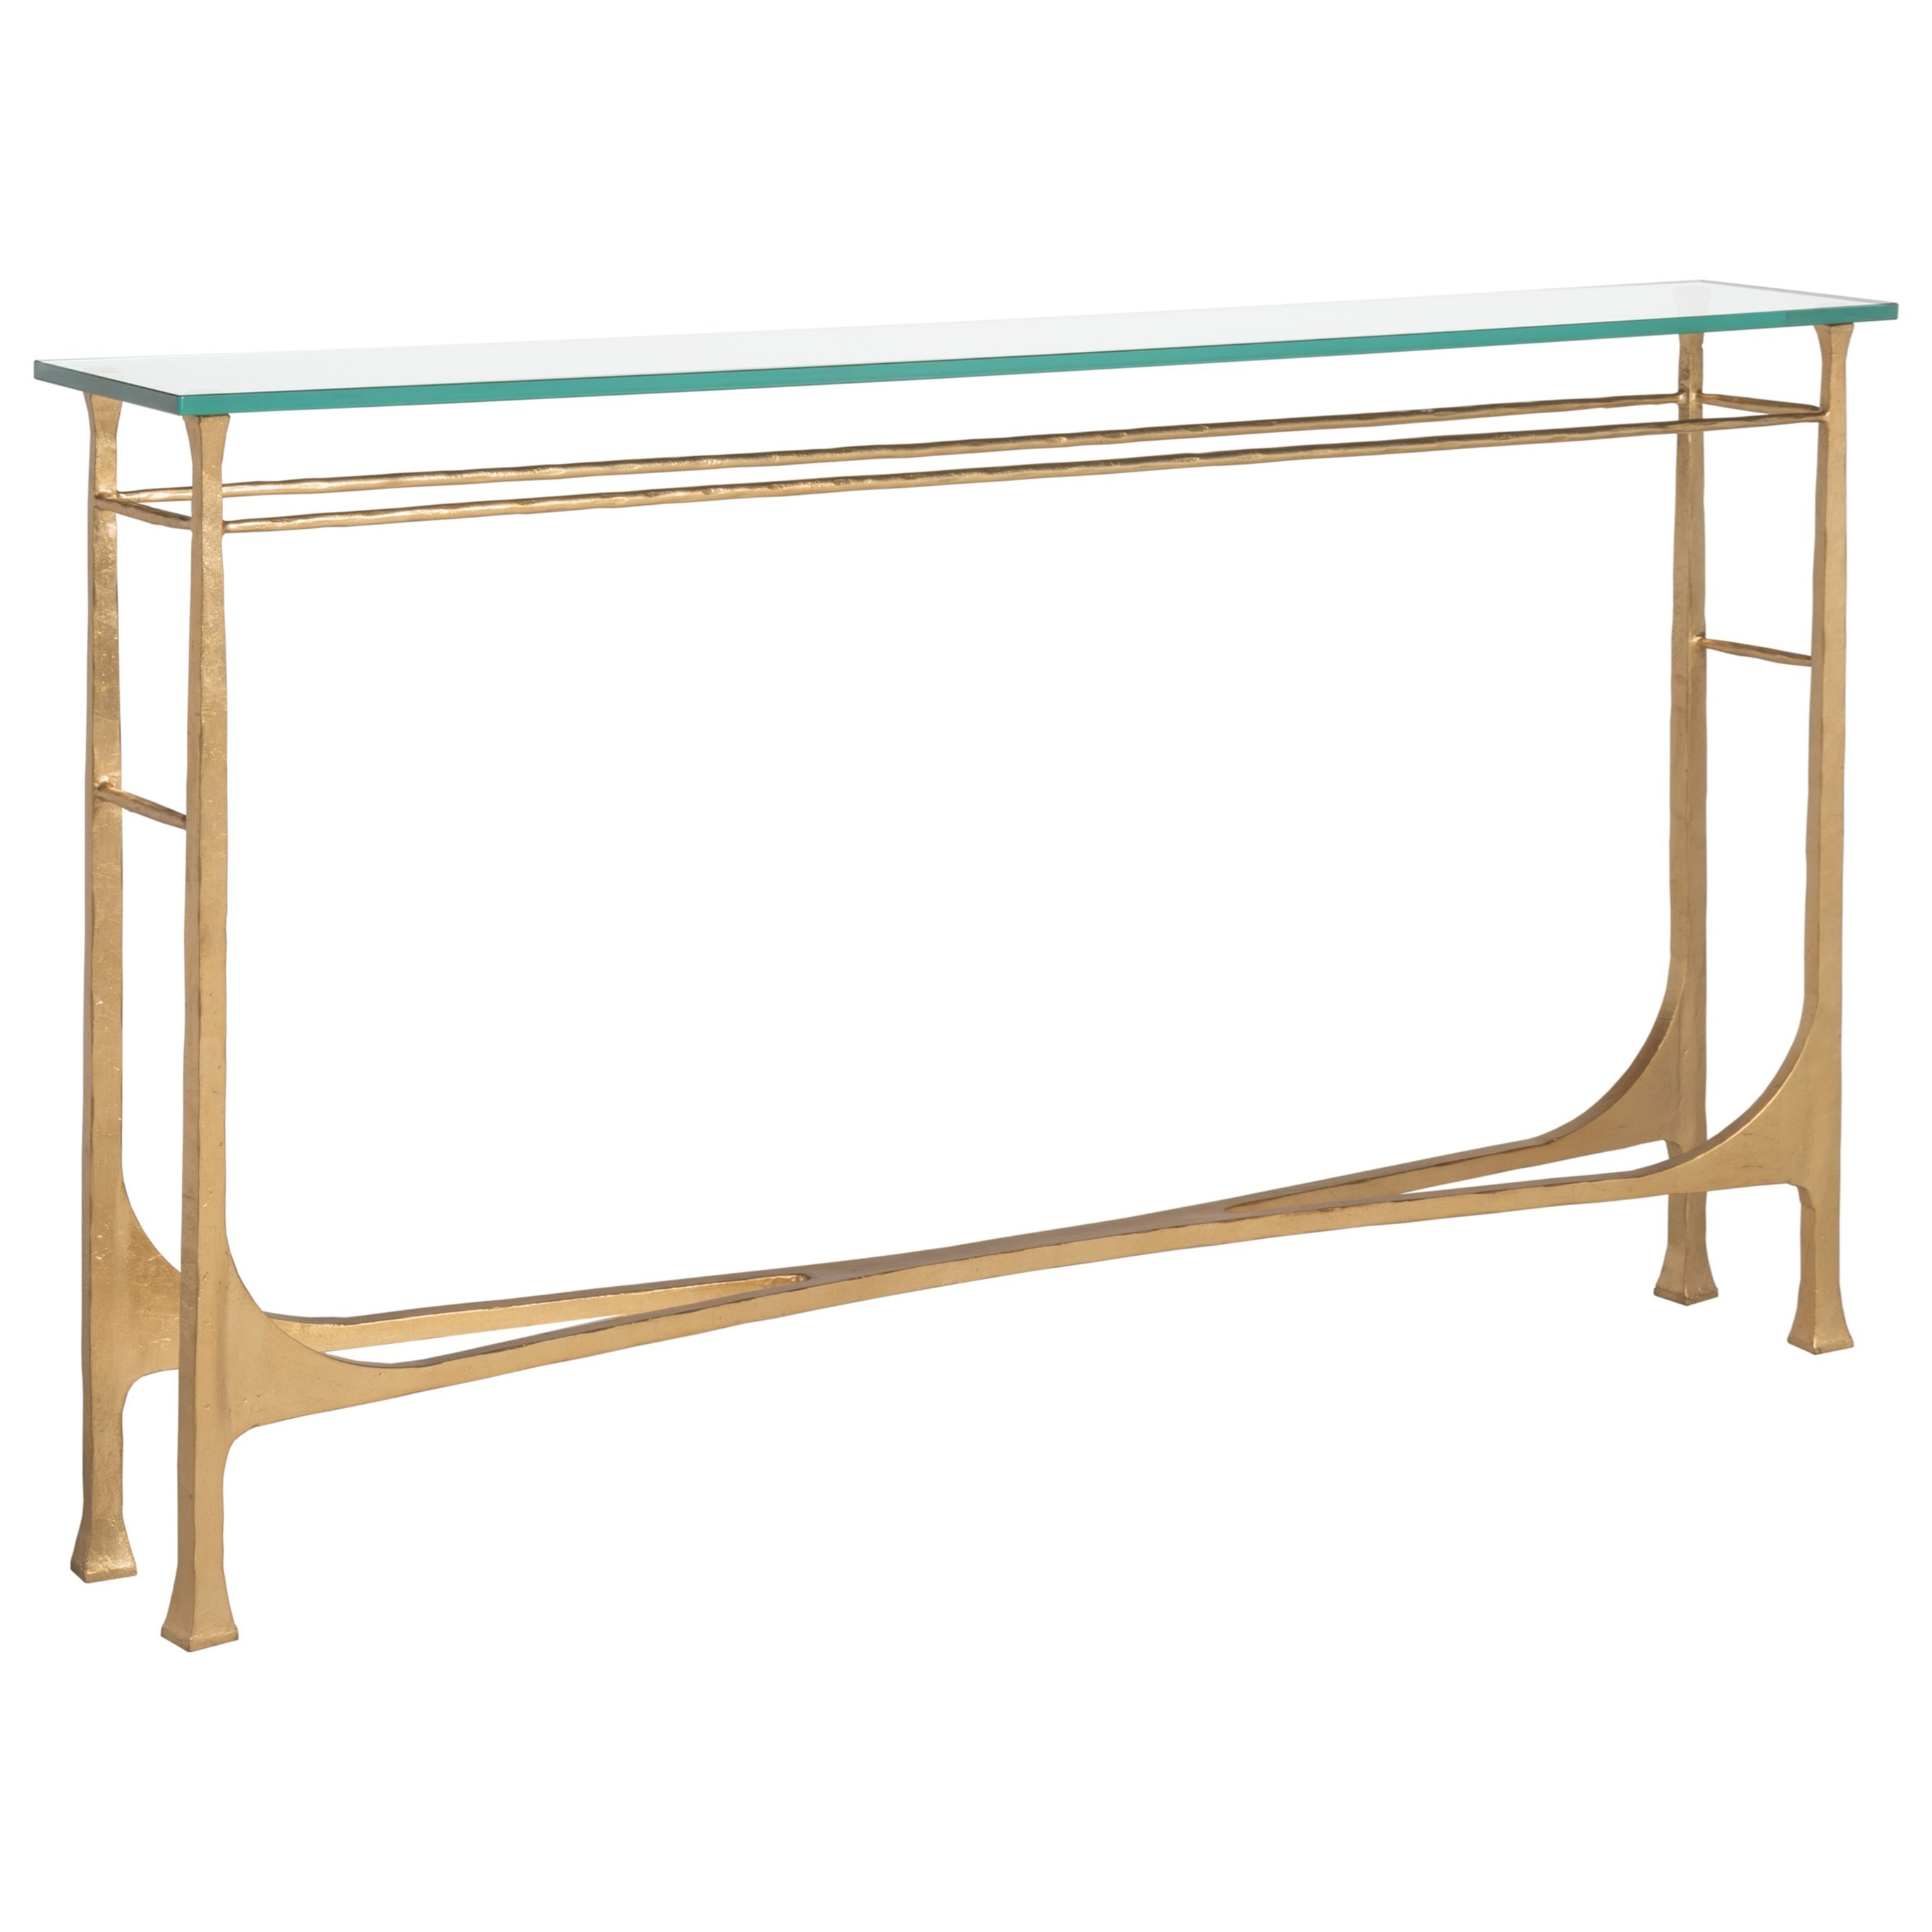 Metal Designs Bruno Console by Artistica at Baer's Furniture